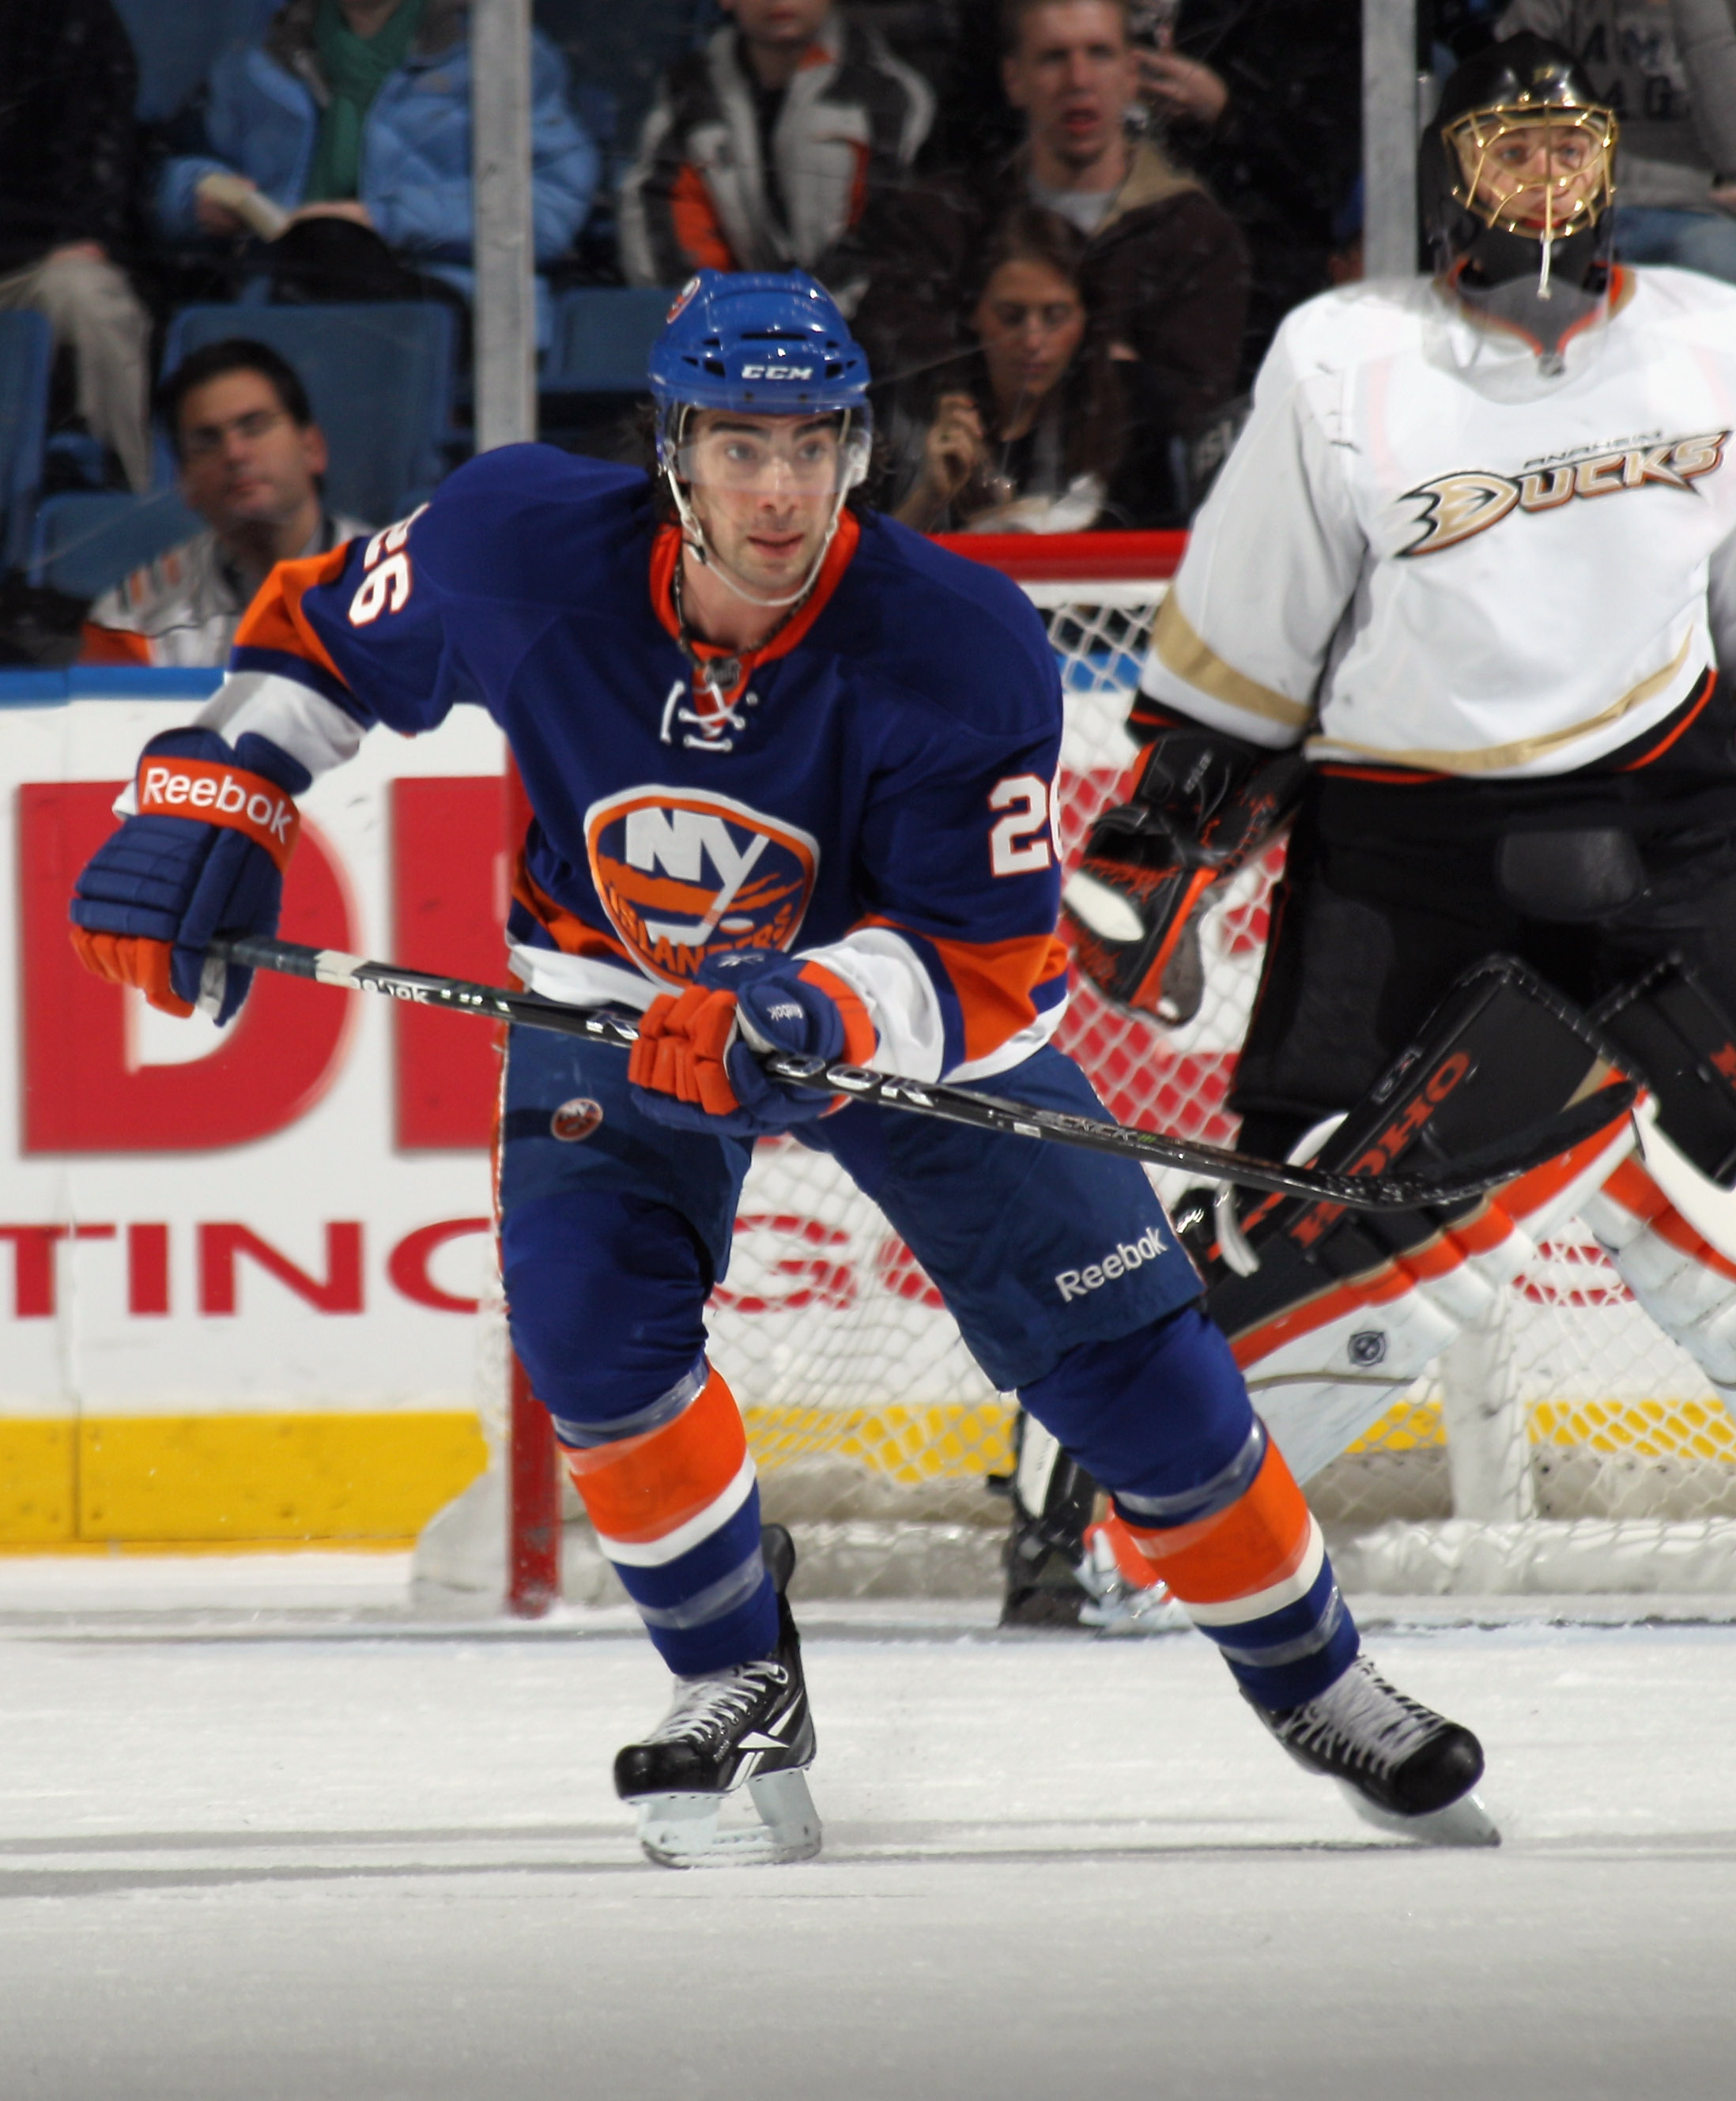 UNIONDALE, NY - DECEMBER 16: Matt Moulson #26 of the New York Islanders skates against the Anaheim Ducks at the Nassau Coliseum on December 16, 2010 in Uniondale, New York.  (Photo by Bruce Bennett/Getty Images)